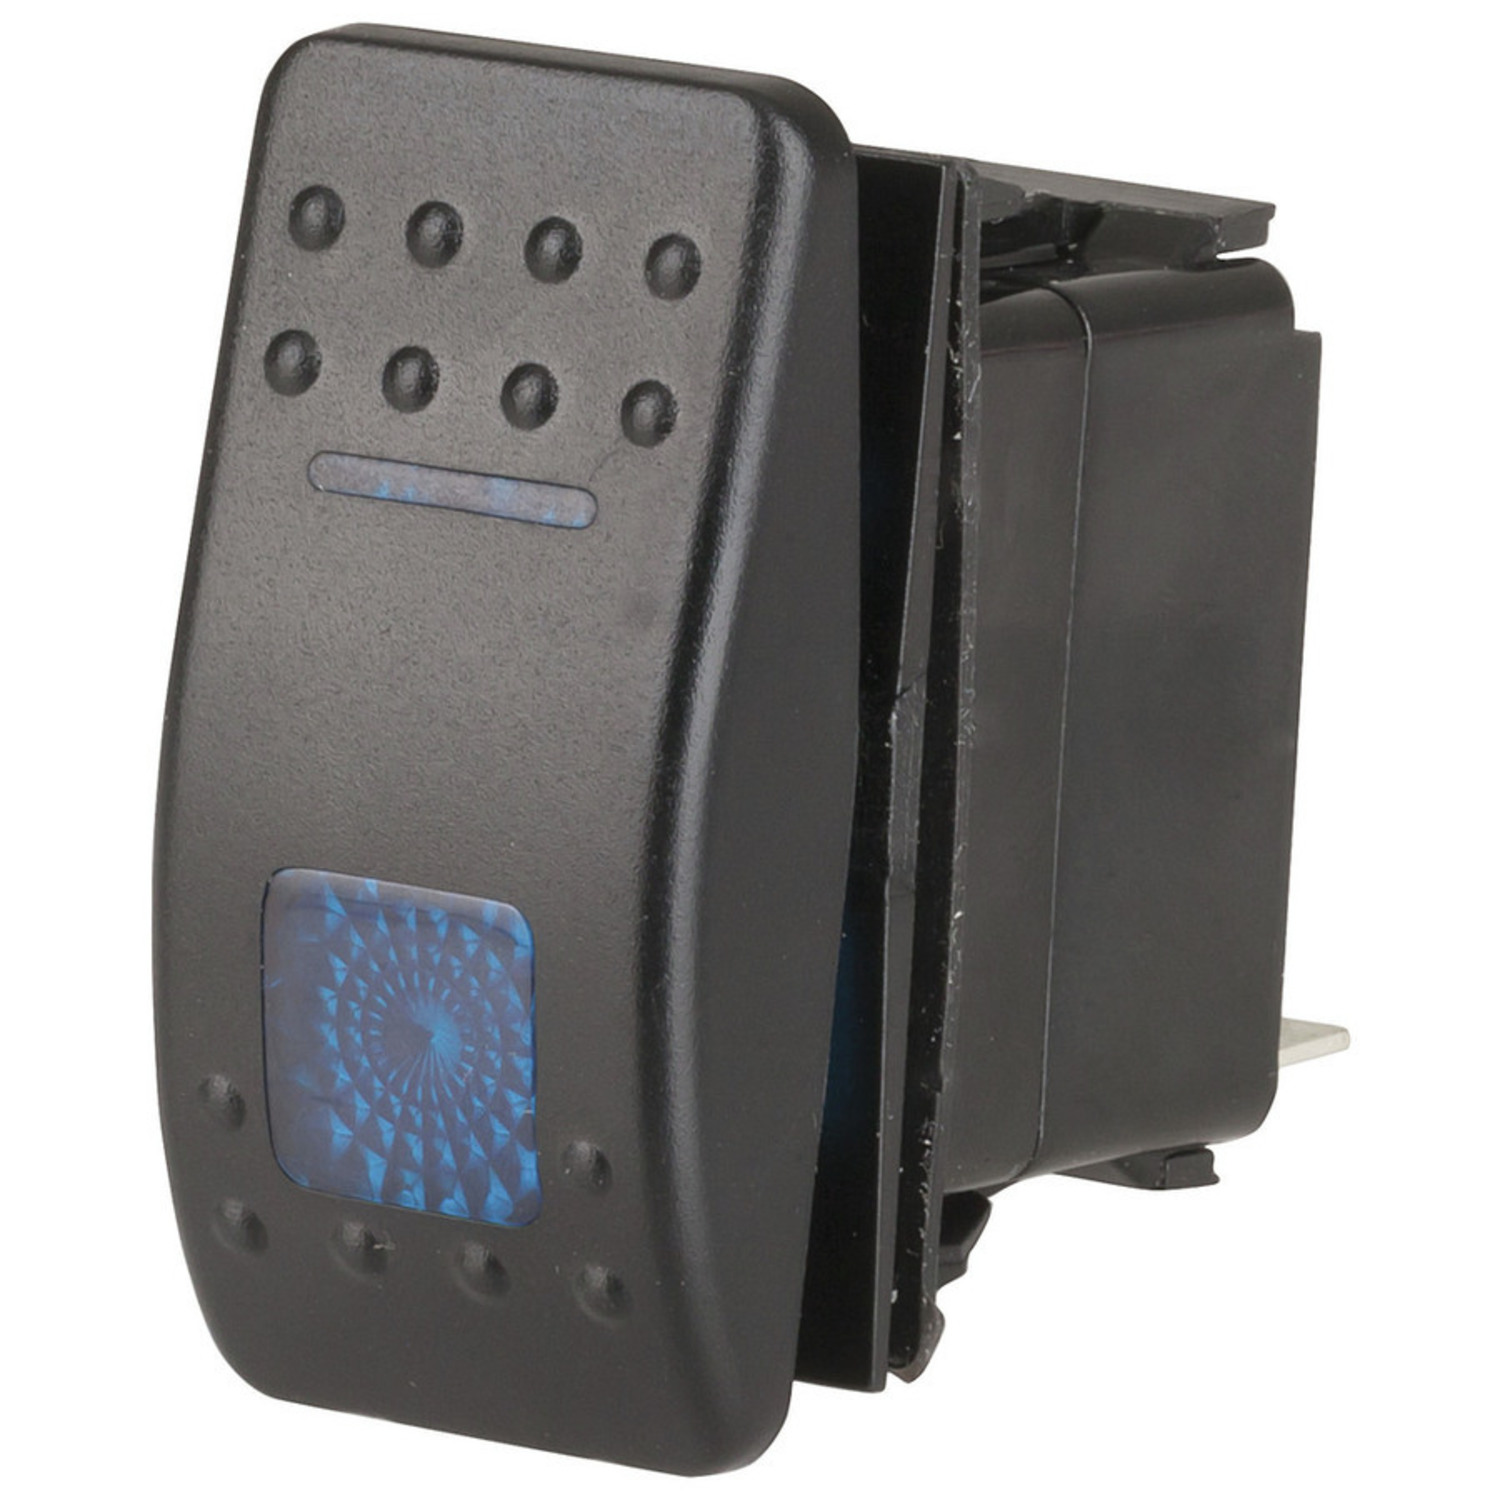 SPDT Dual Illuminated Rocker Switch with Labels & Interchangeable Covers Illuminated Switch Wiring Diagram With Blue on